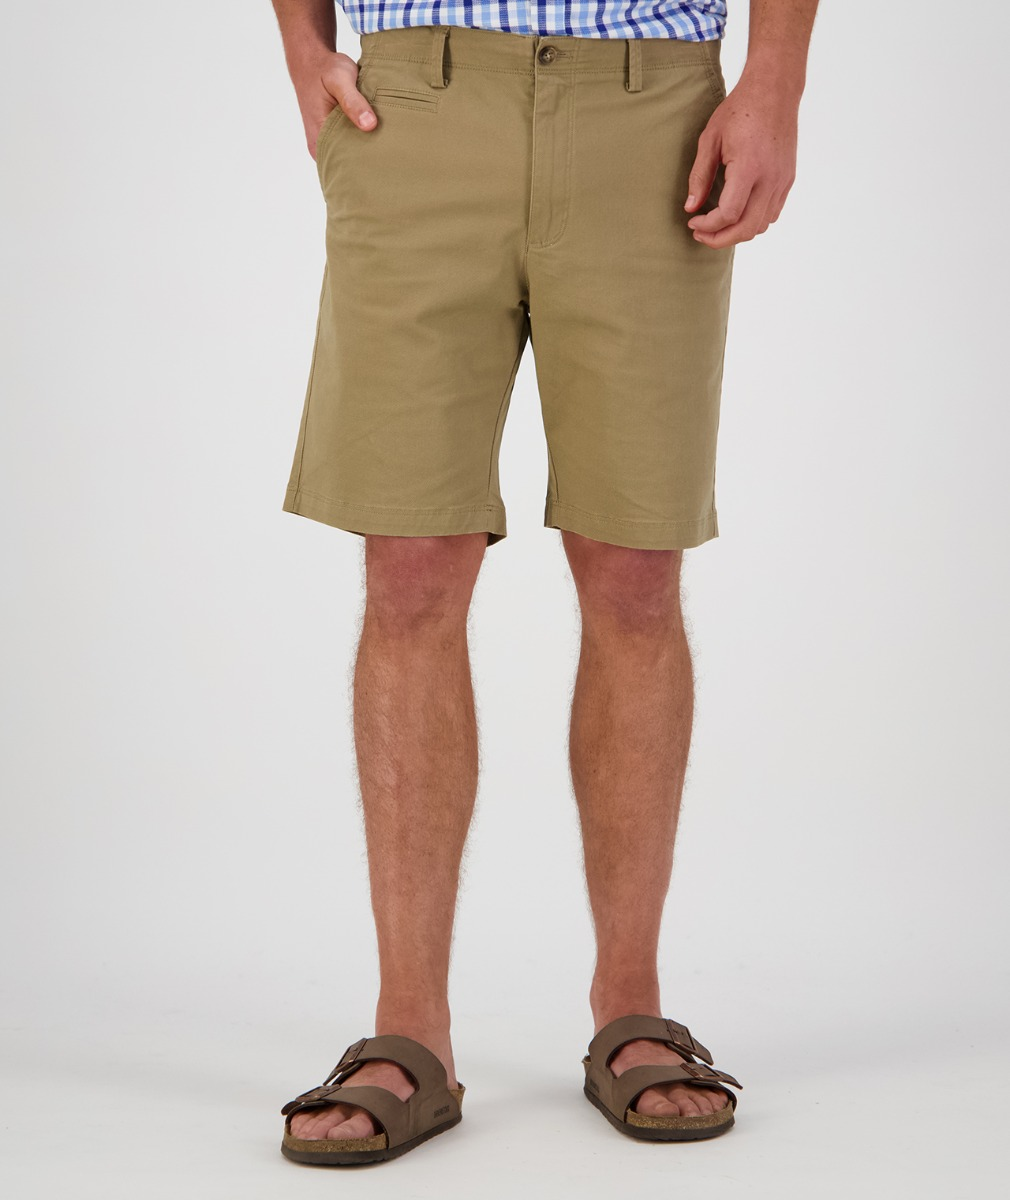 Swanndri Men's Mission Bay Chino Shorts in Taupe